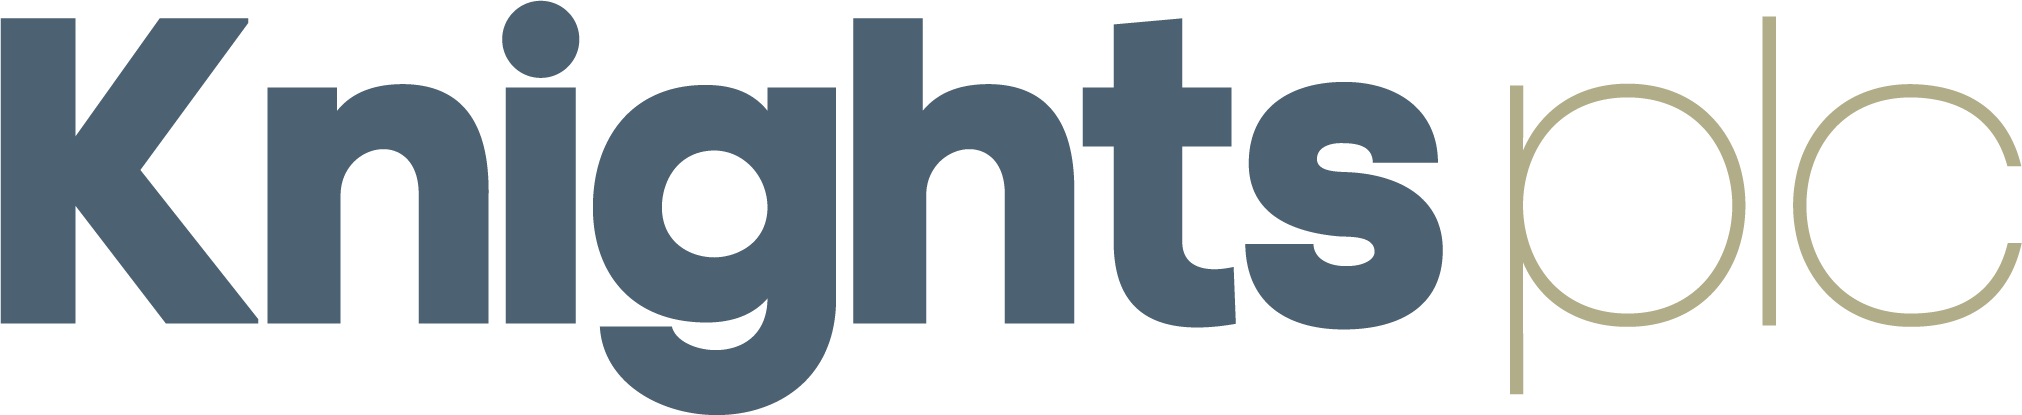 Knights PLC Logo_NEW.png